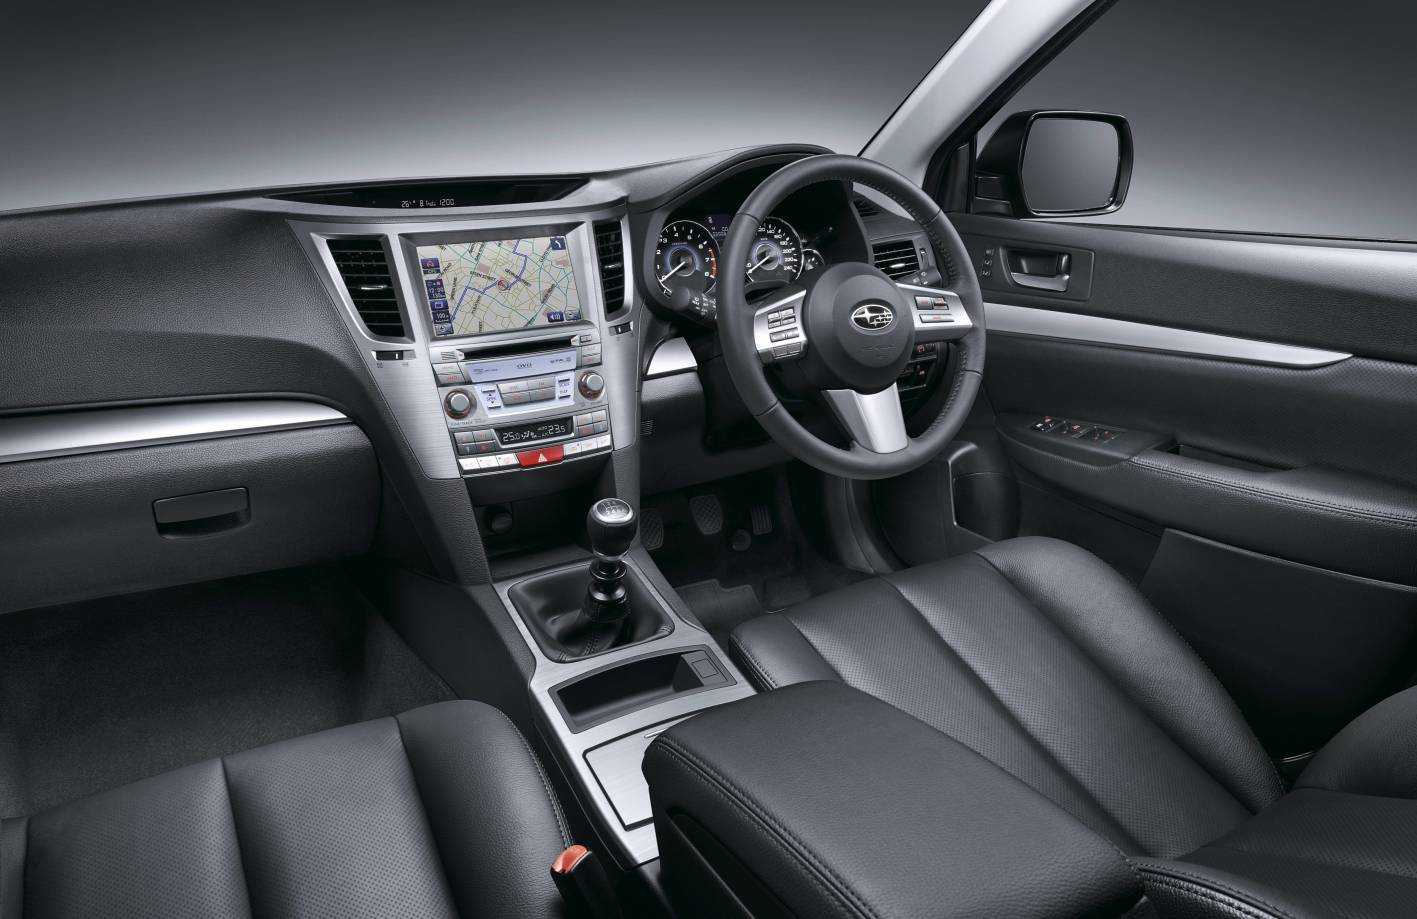 Subaru Outback Wins Interior Of The Year Award Photo Select To View Enlarged